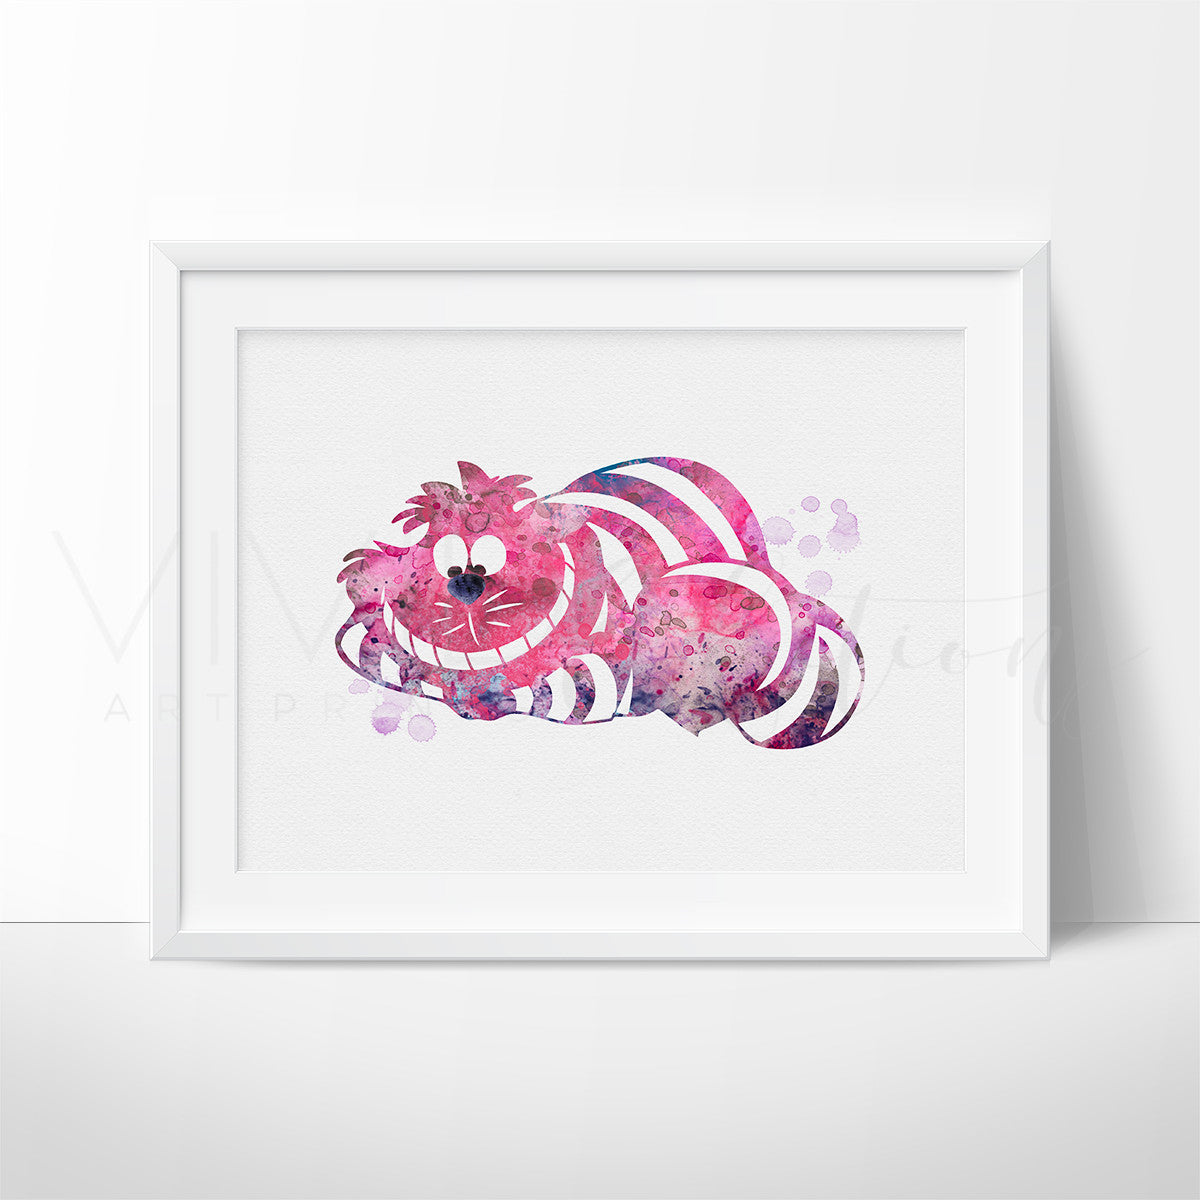 Cheshire Cat, Alice in Wonderland Watercolor Art Print Art Print - VIVIDEDITIONS